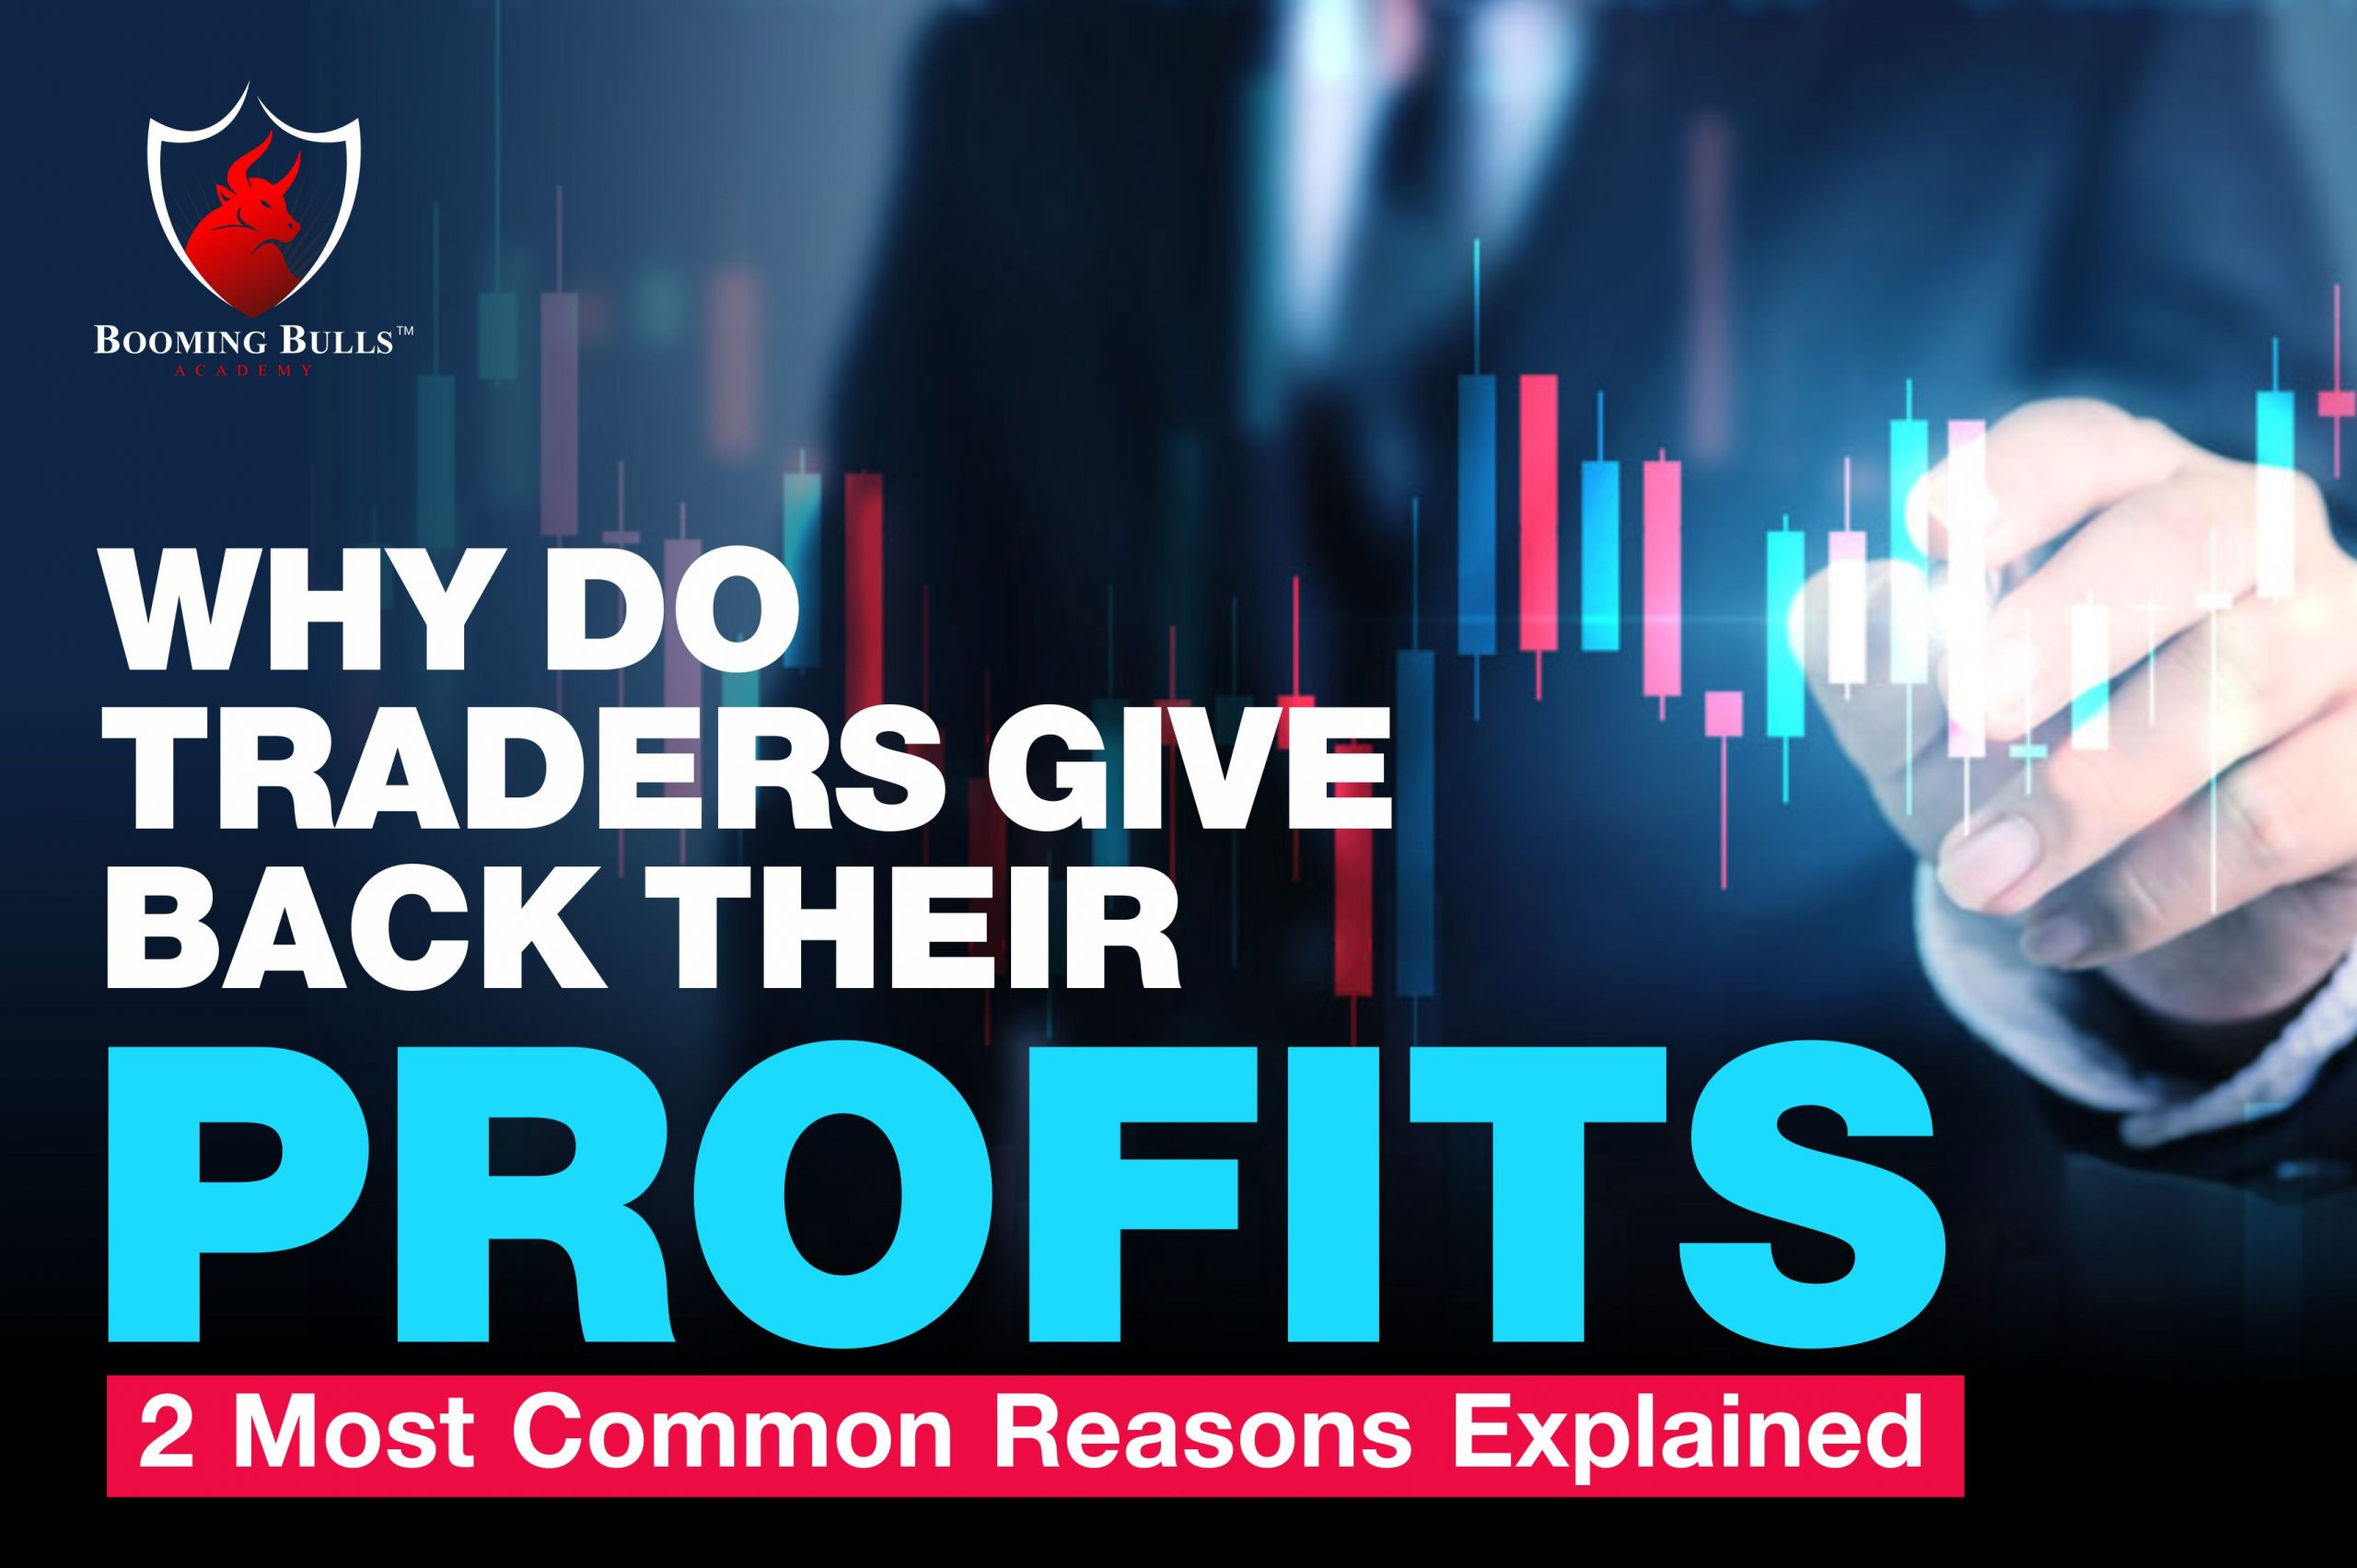 Why do Traders Give Back Their Profits: 2 Most Common Reasons Explained